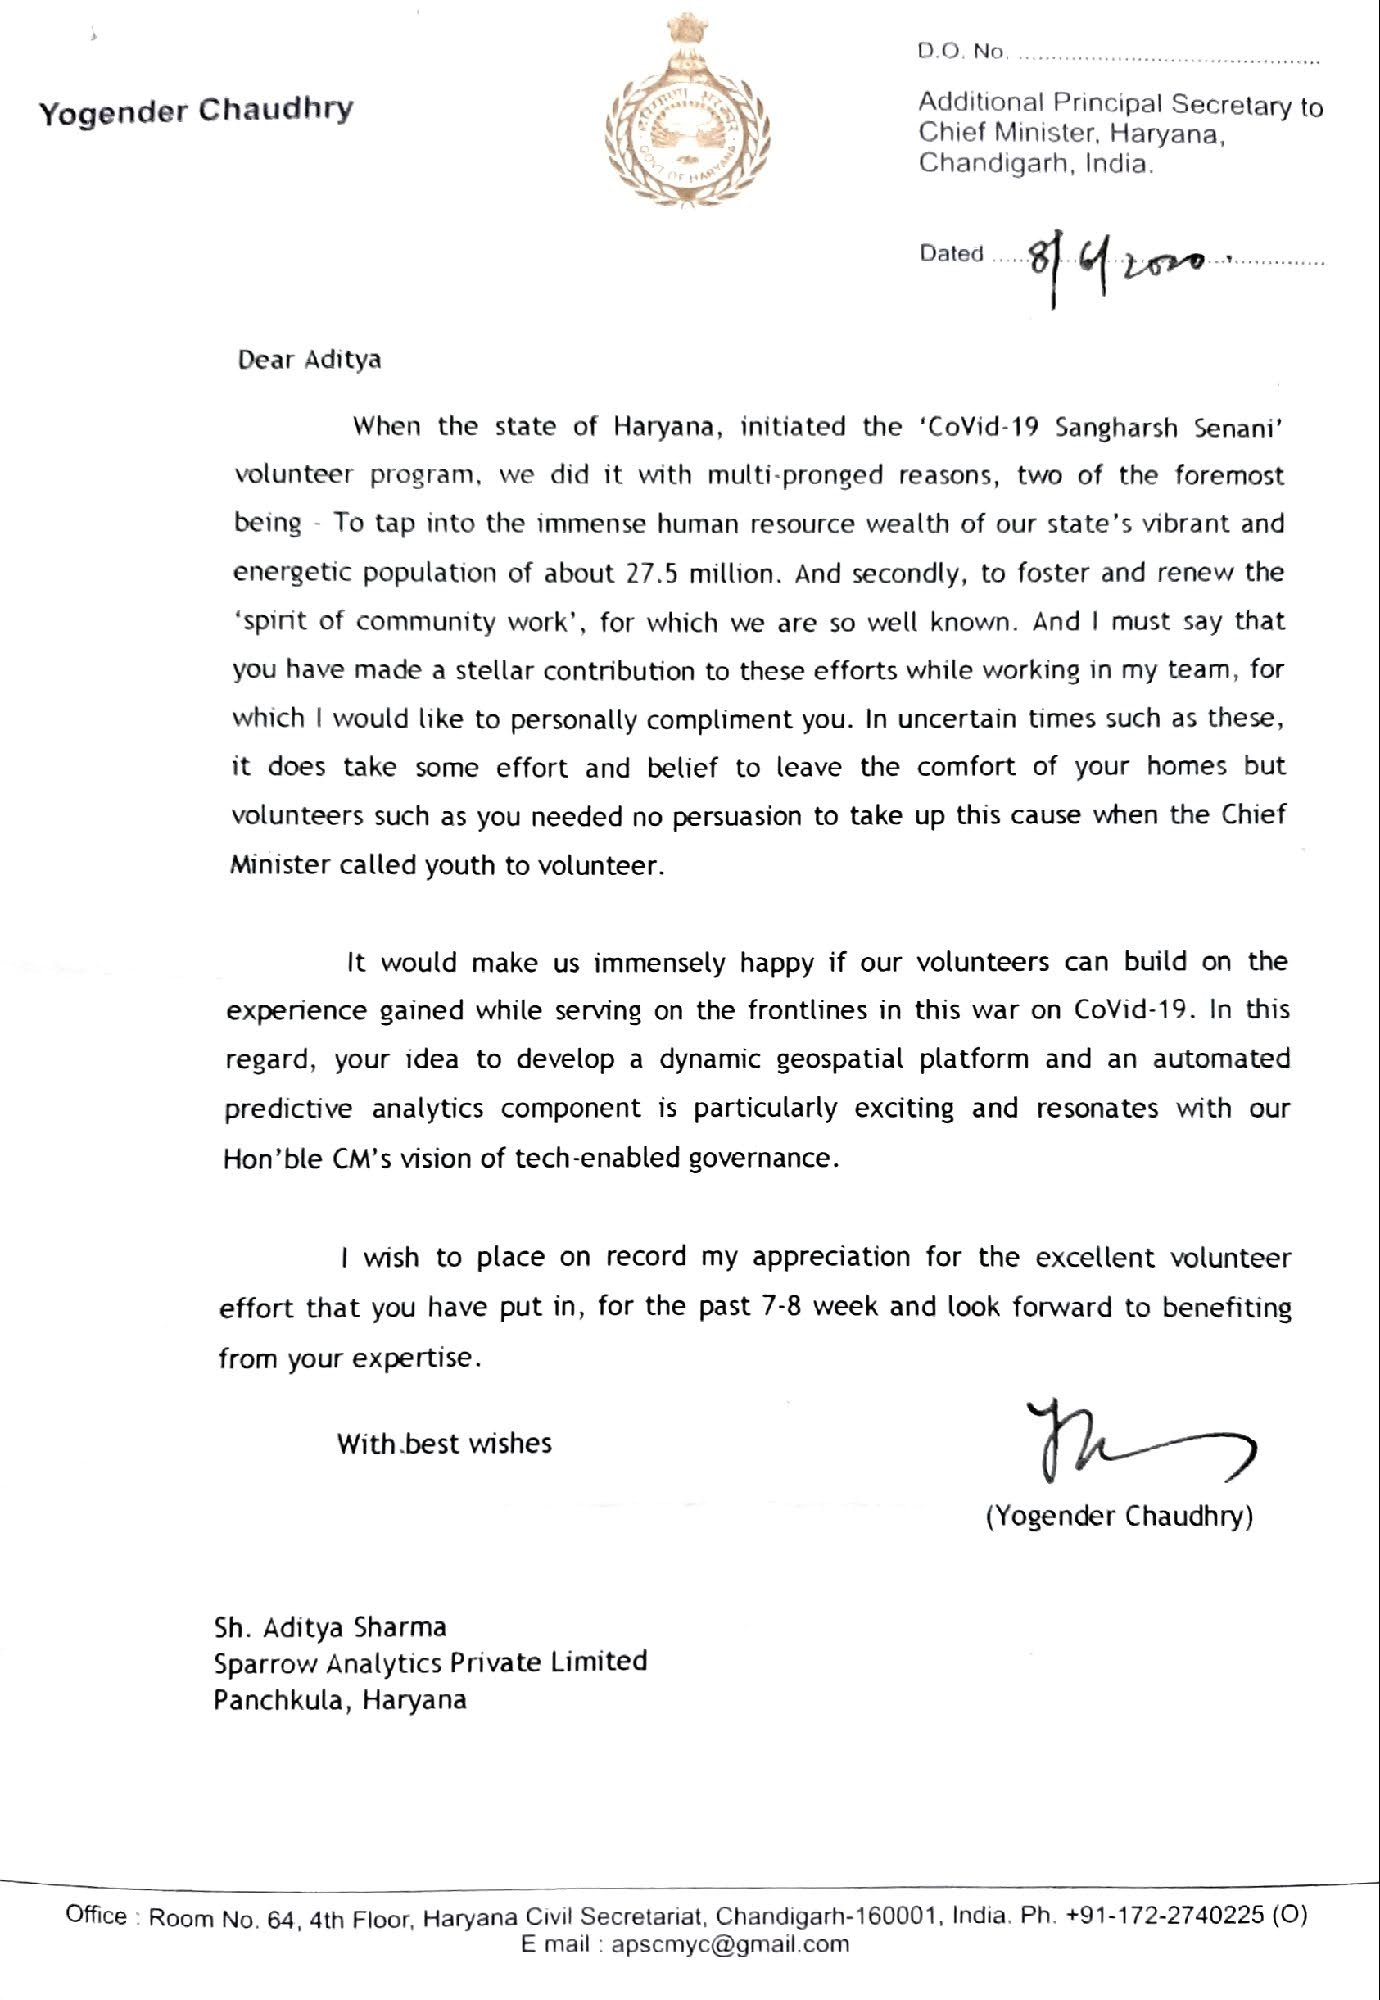 Commendation Letter from Addl. Principal Secretary to Chief Minister, Haryana